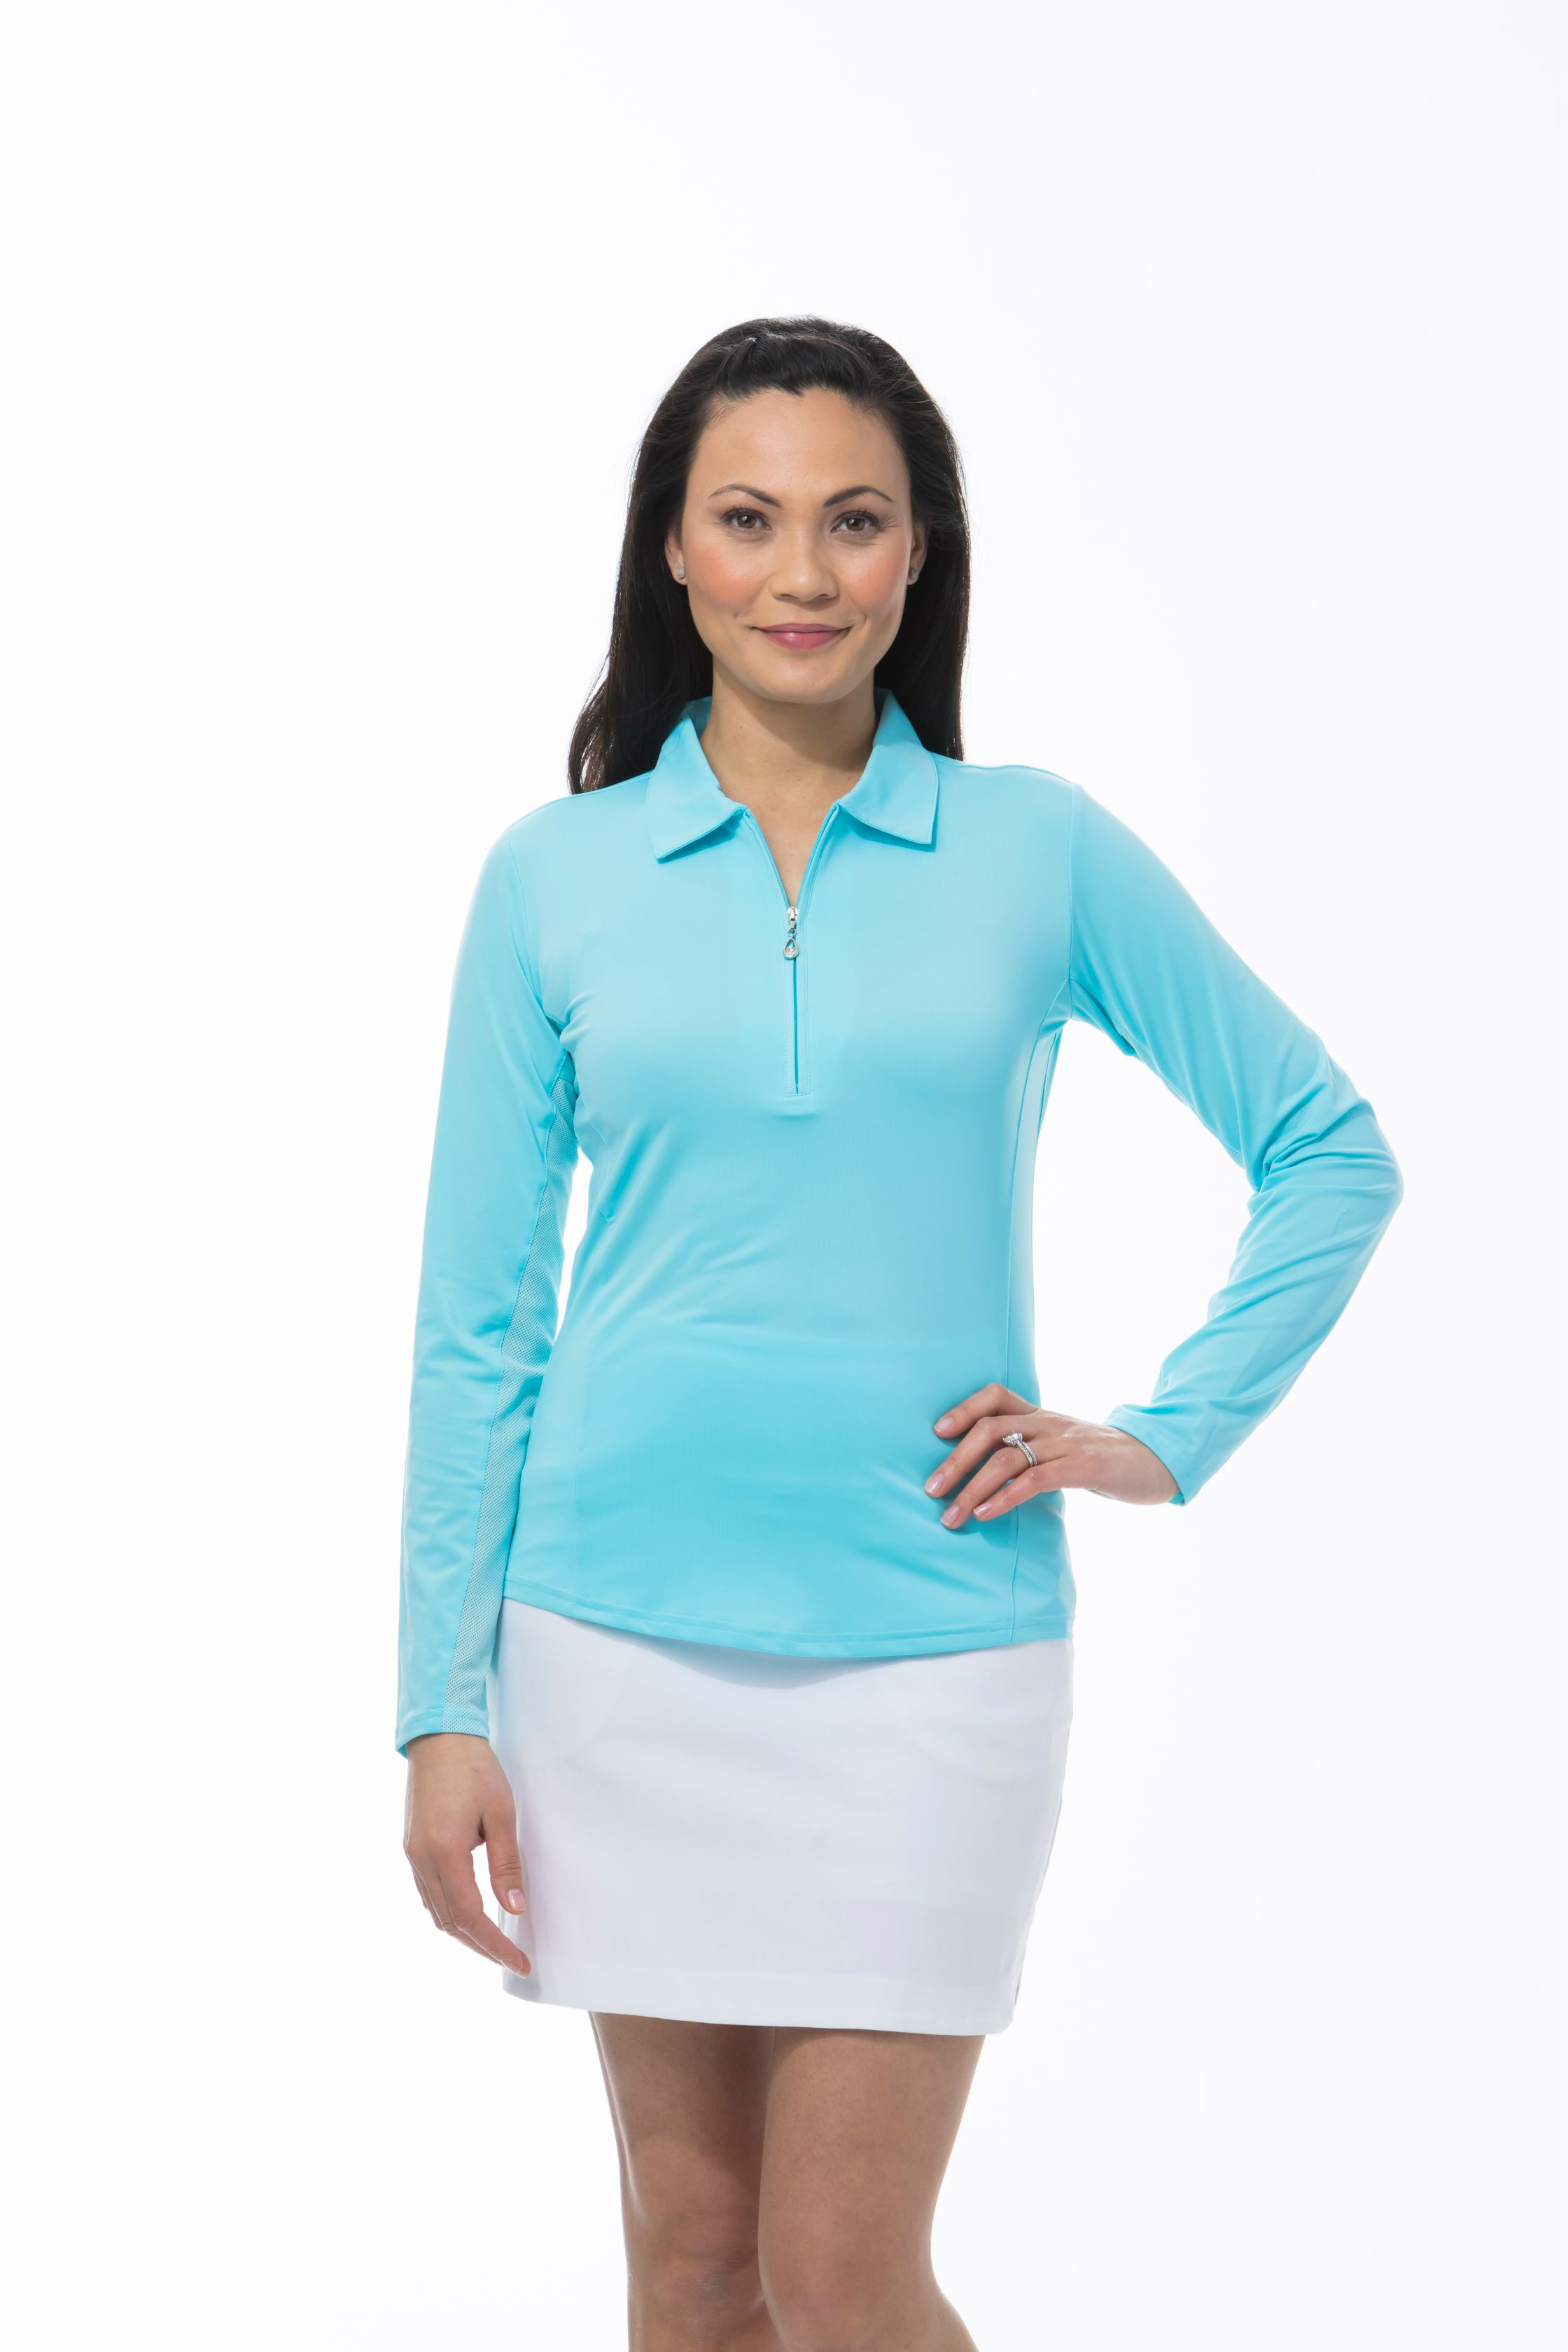 Bundle - 900433 SunGlow Zip Polo. Pick Two Colors for One Great Price